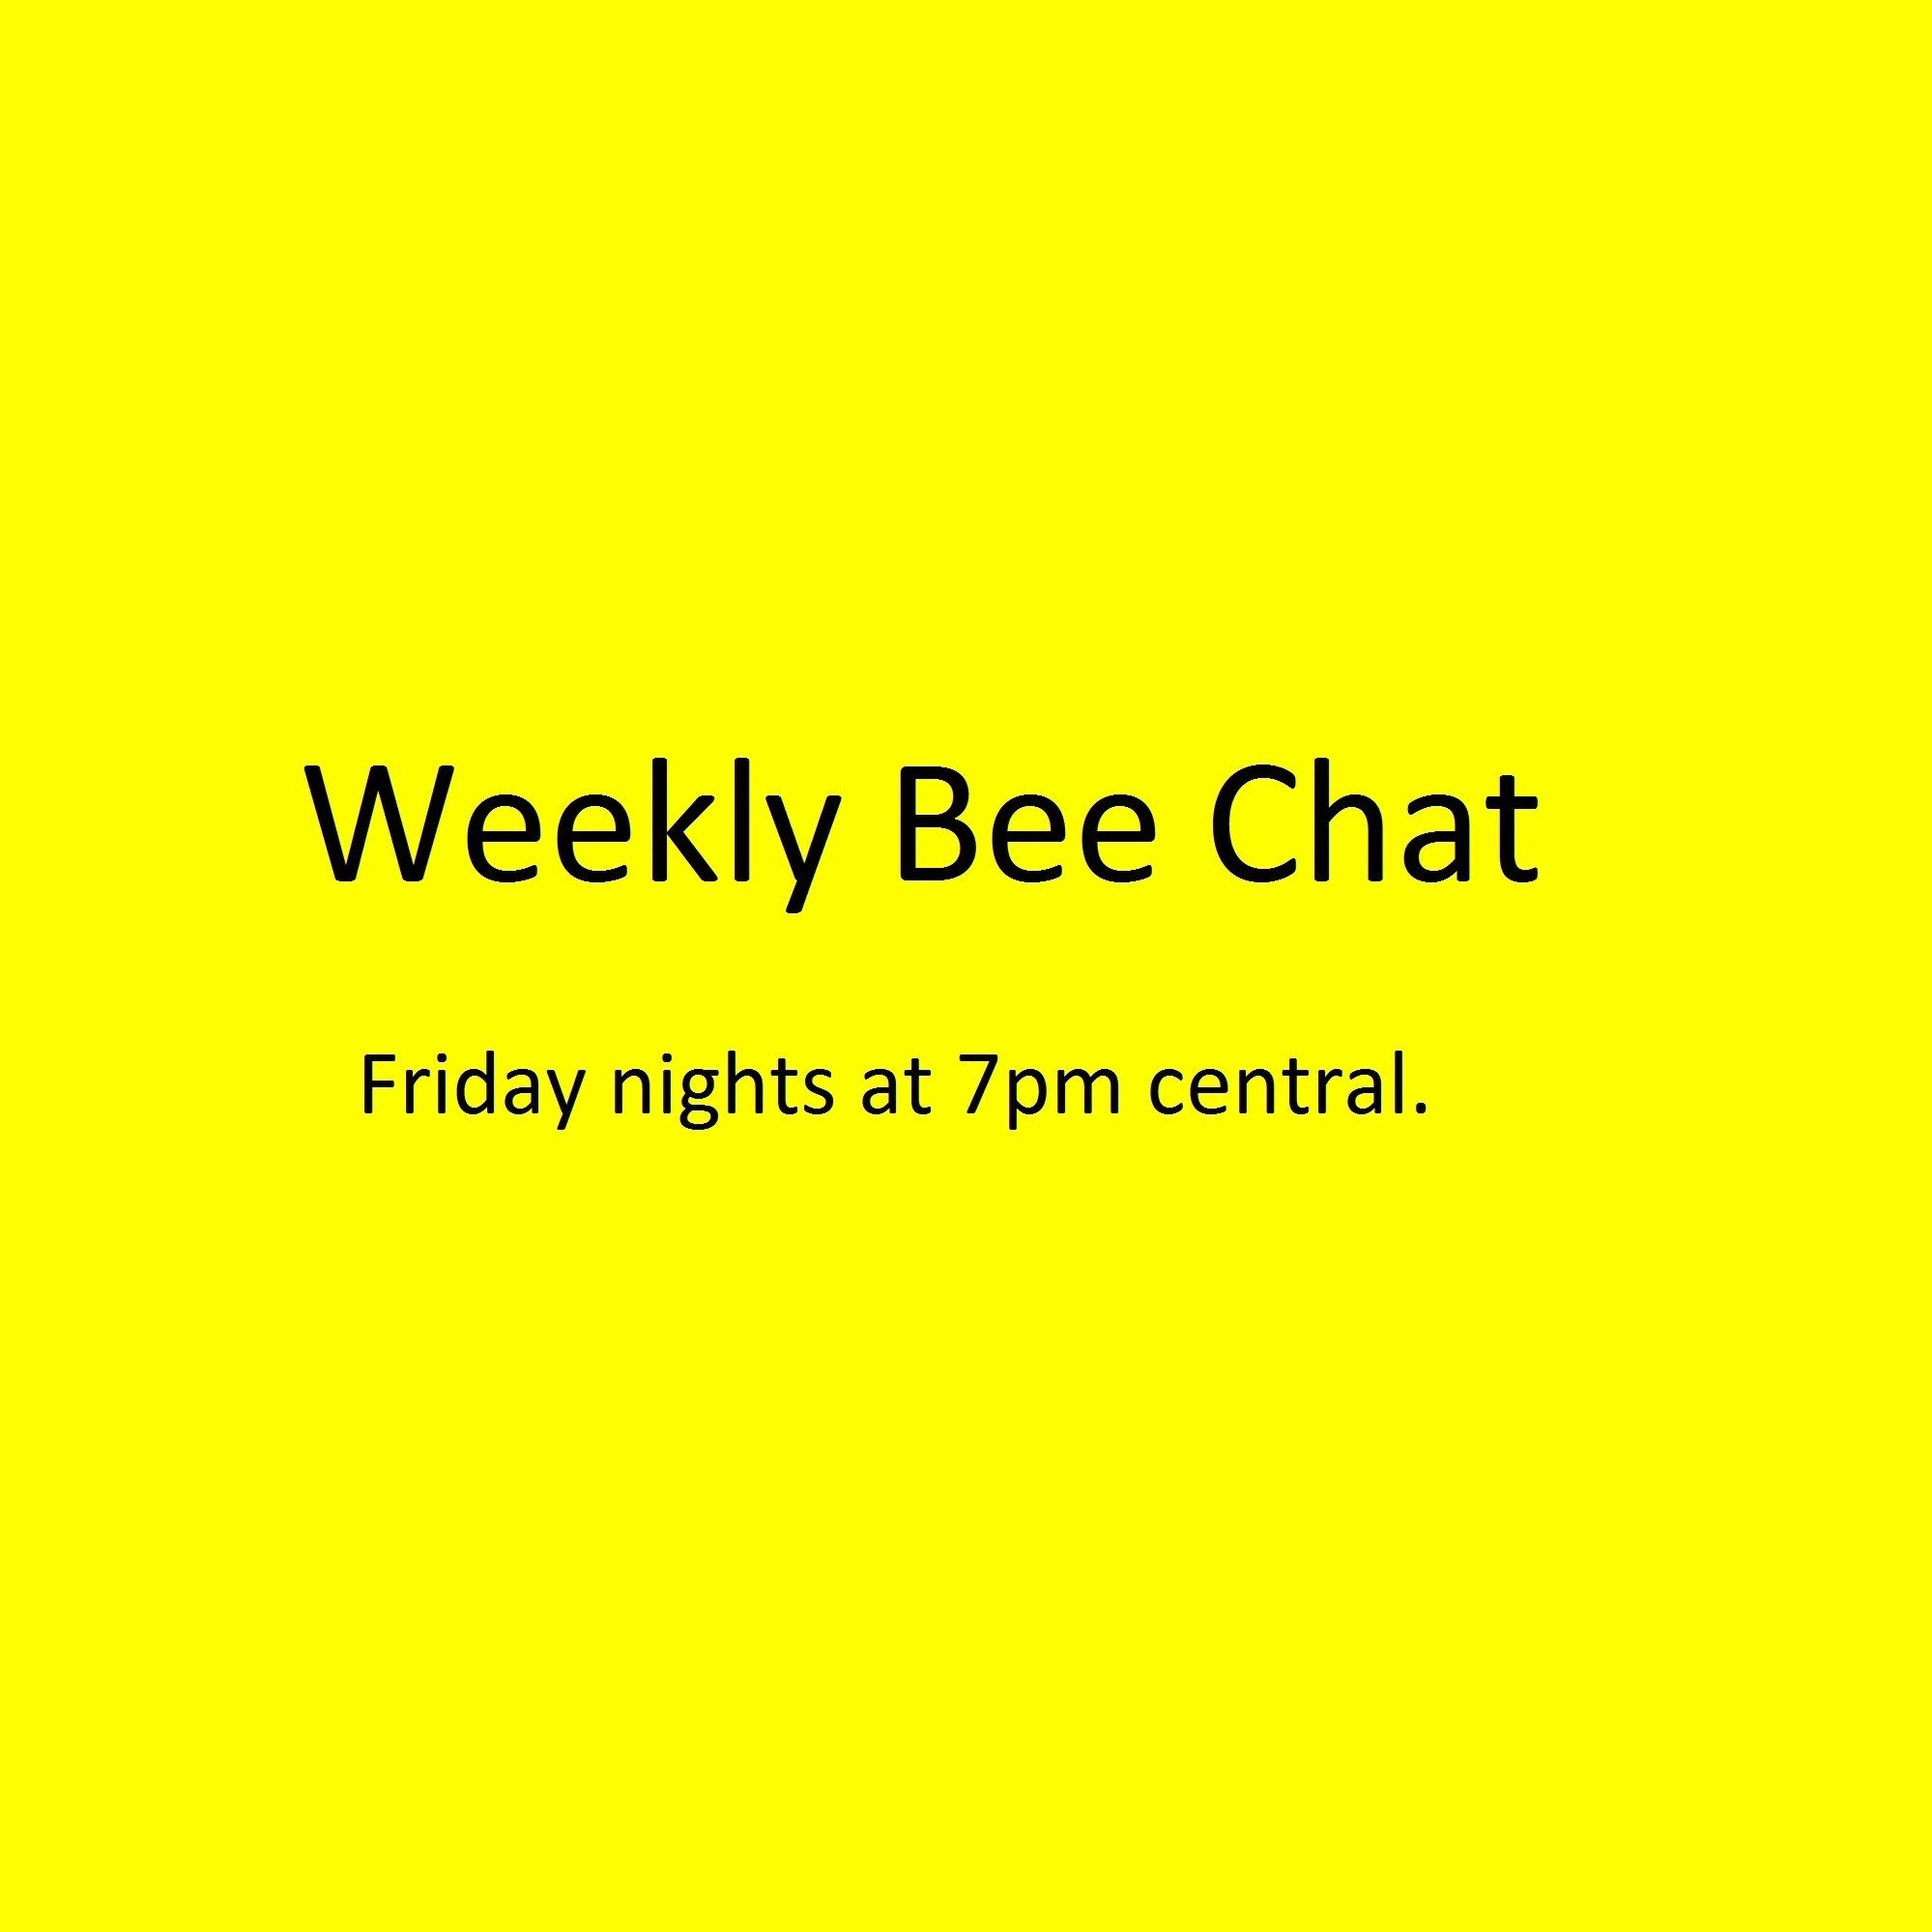 bee chat